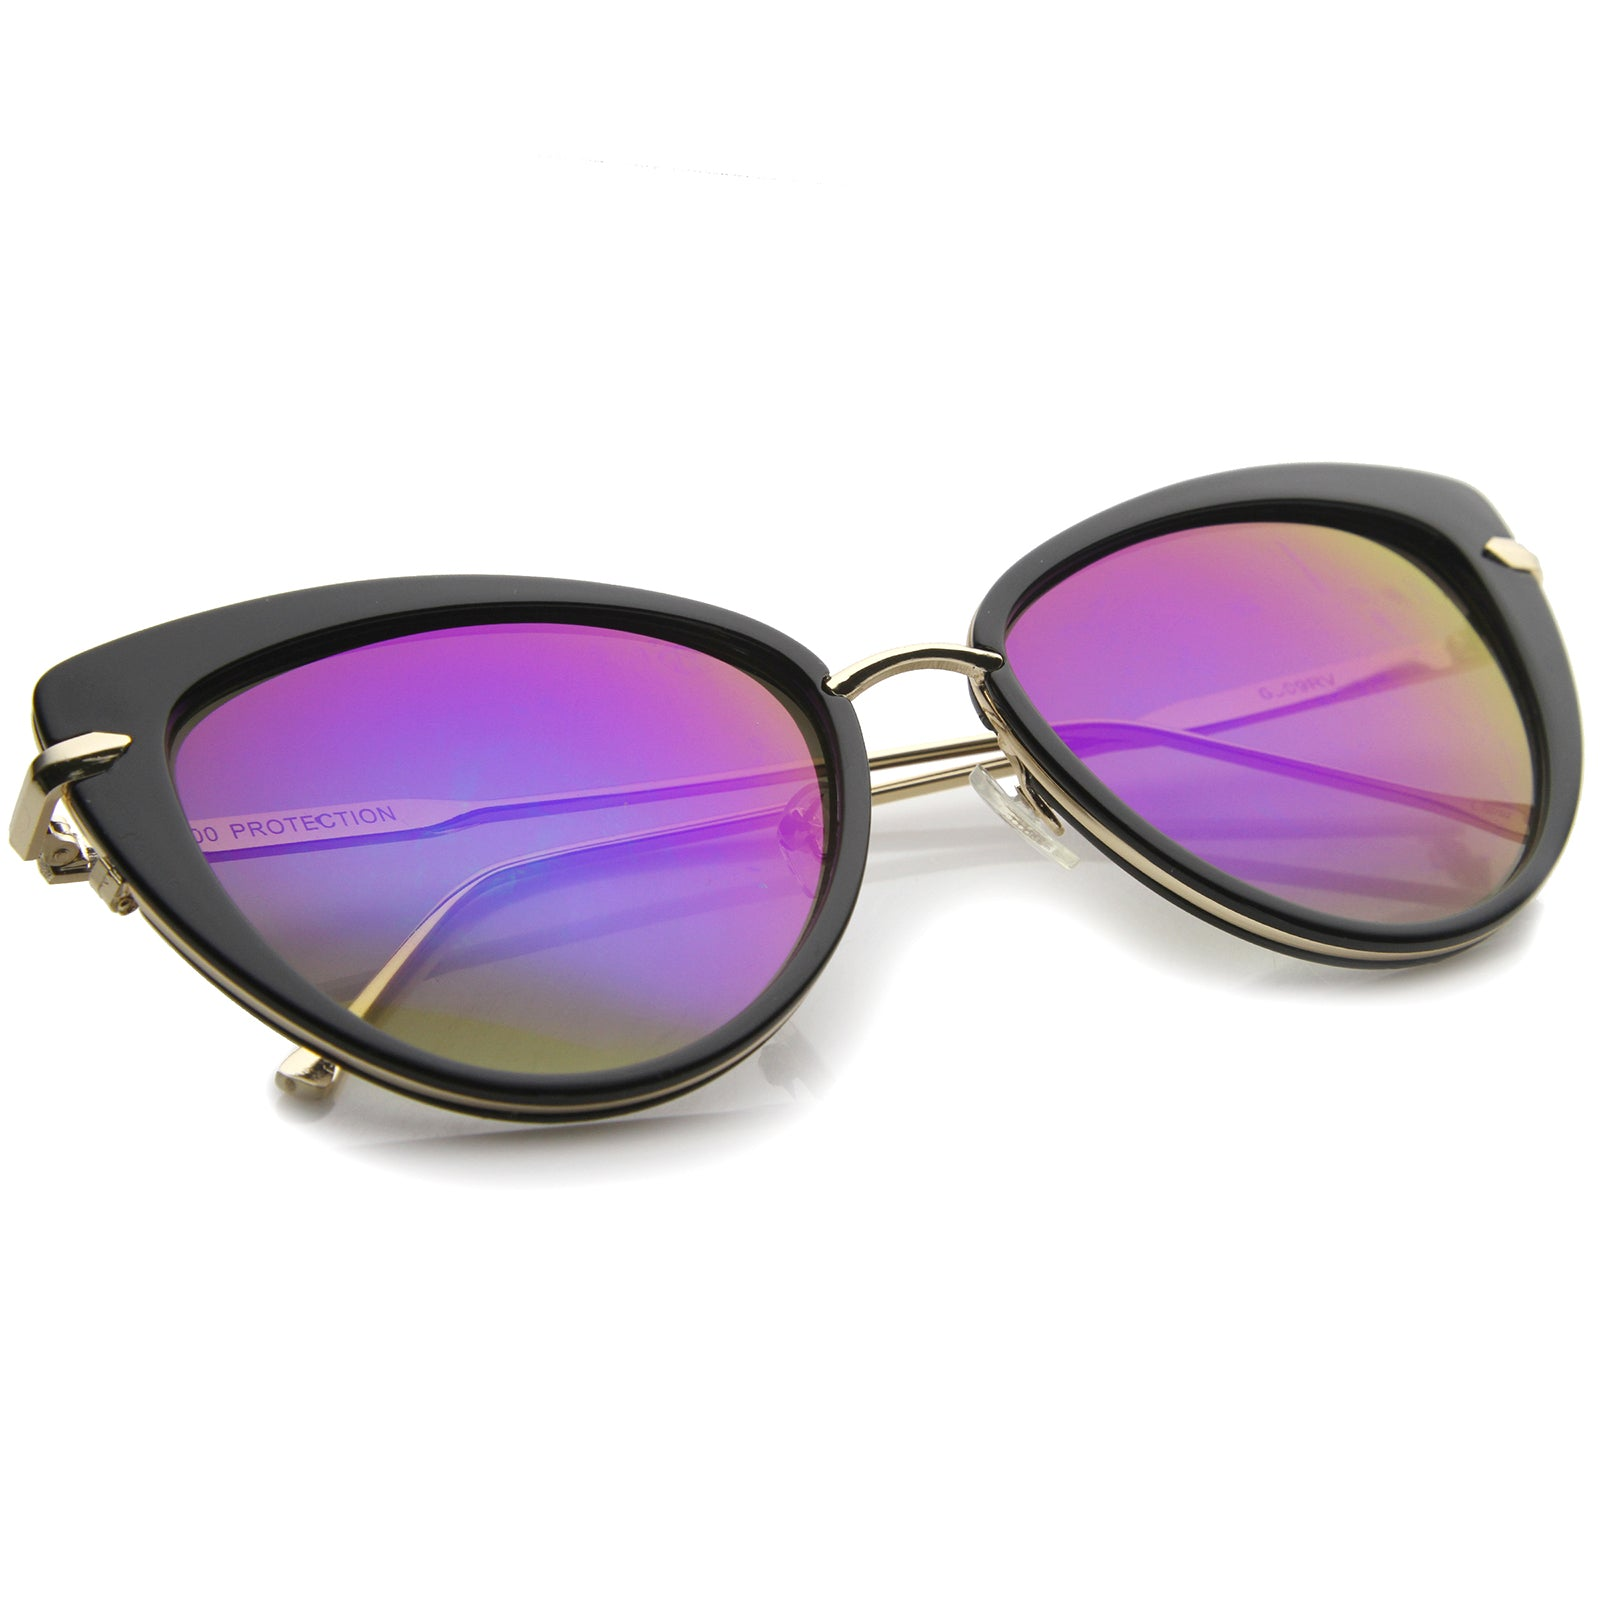 Women's High Fashion Metal Temple Super Cat Eye Sunglasses 55mm - sunglass.la - 4